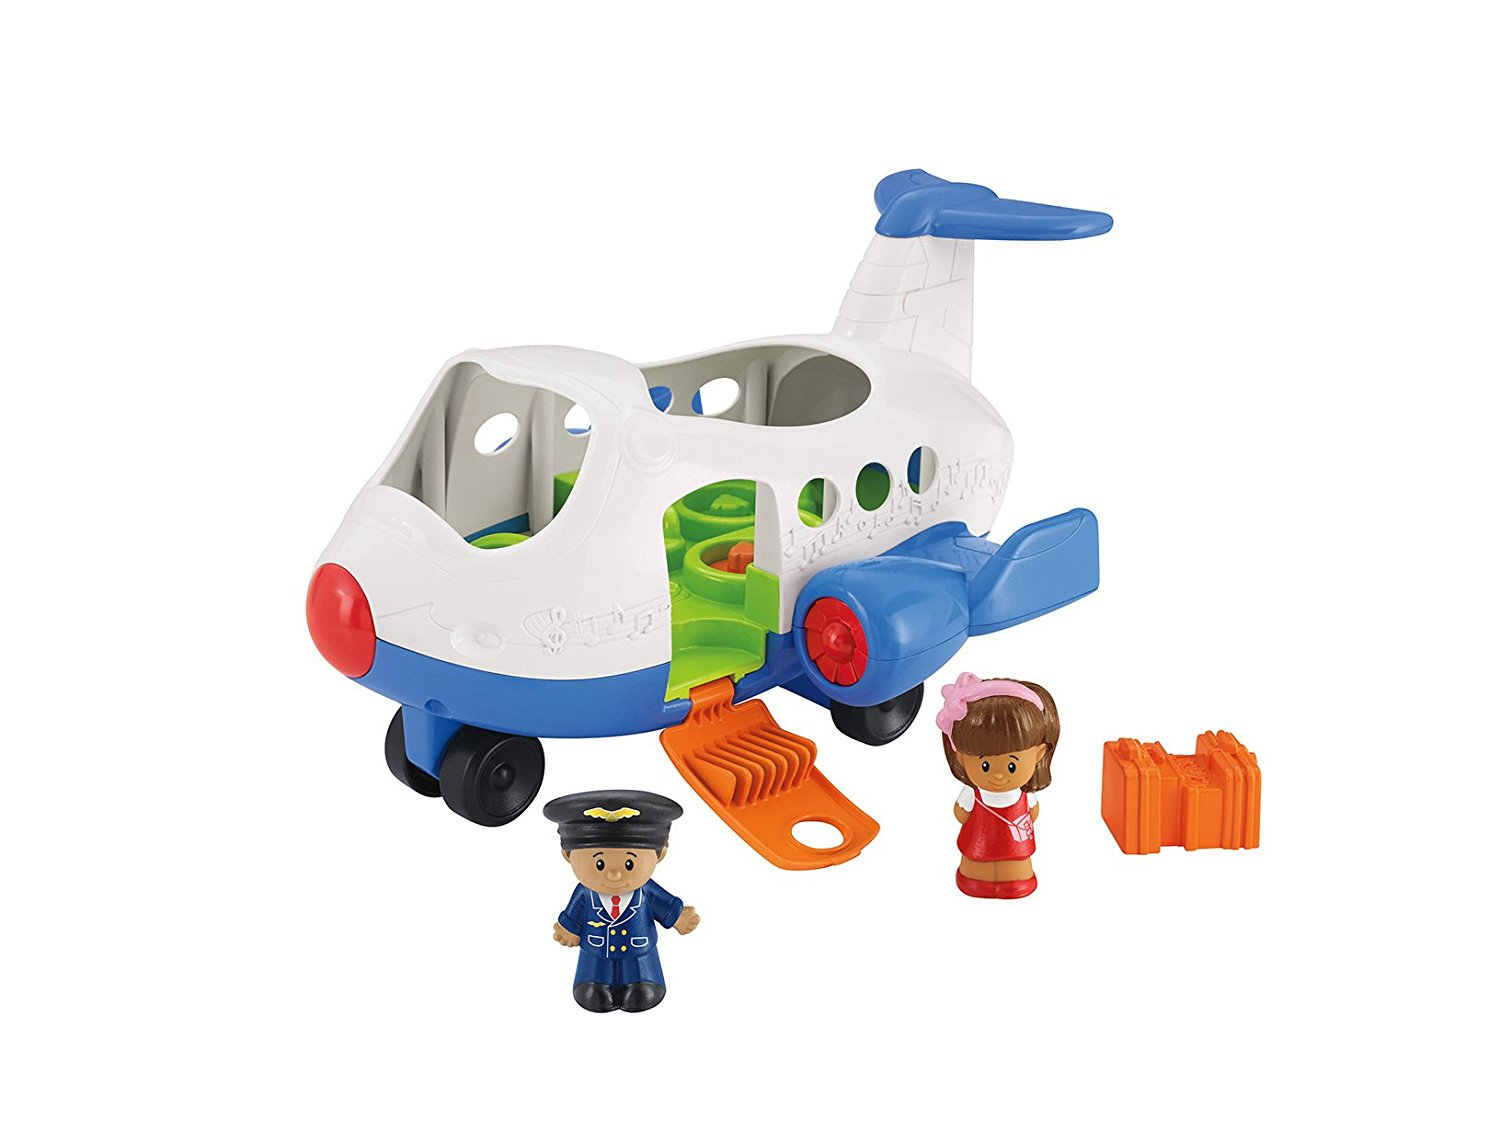 Avion Con Sonidos Secretos Little People